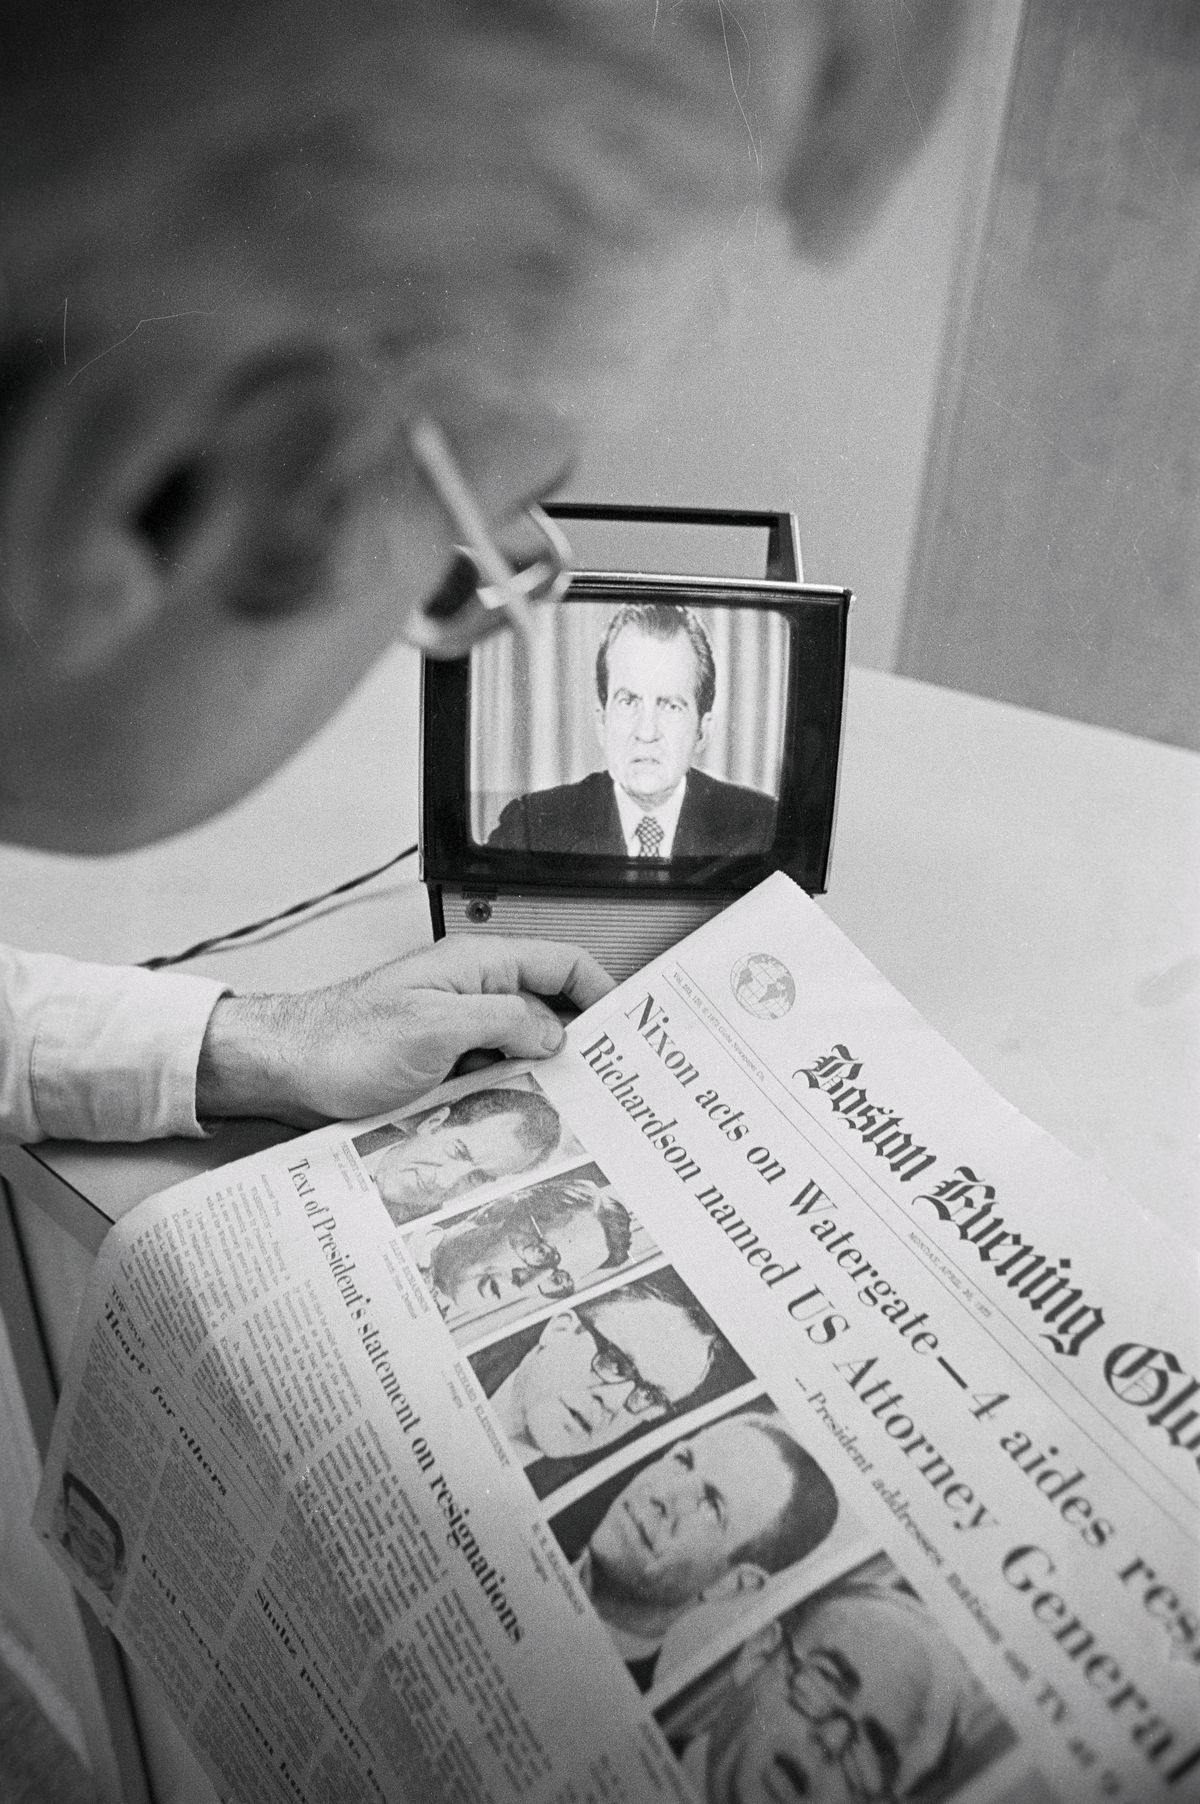 A man is looking at a copy of the Boston Evening Globe newspaper about Watergate while also watching President Nixon on a small television screen.